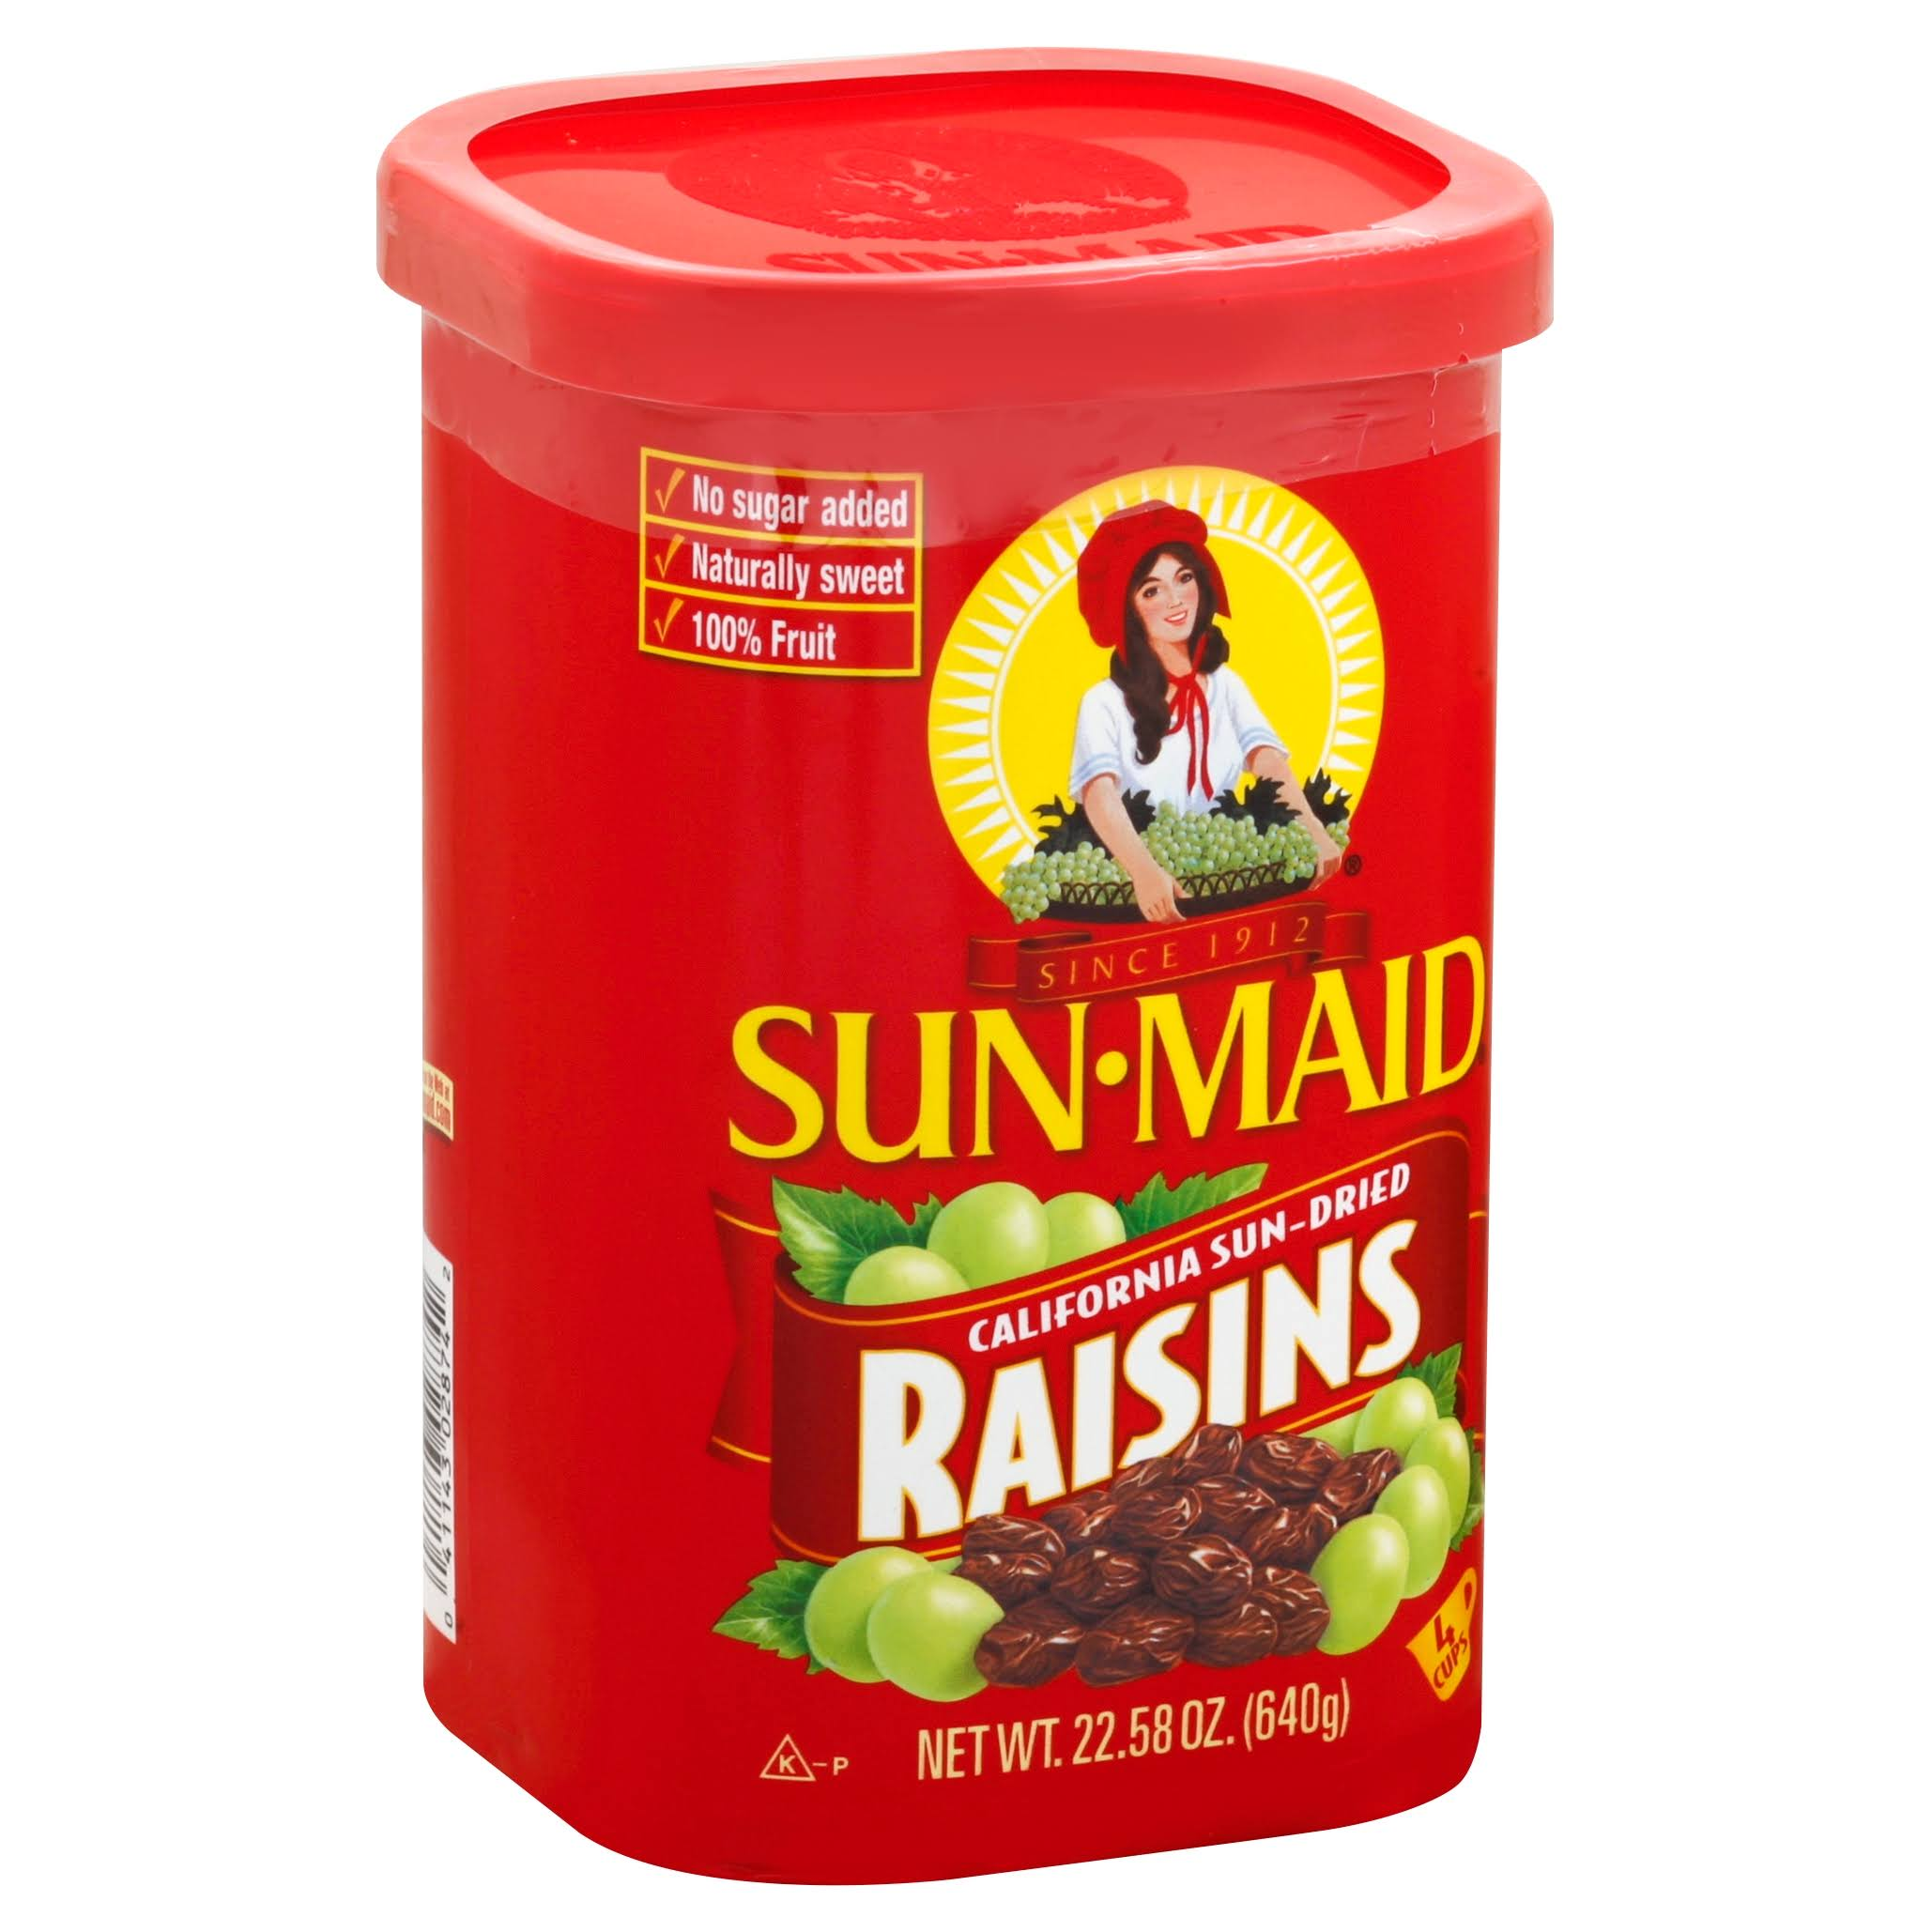 Sun-Maid Raisins - Brown, 22.58oz